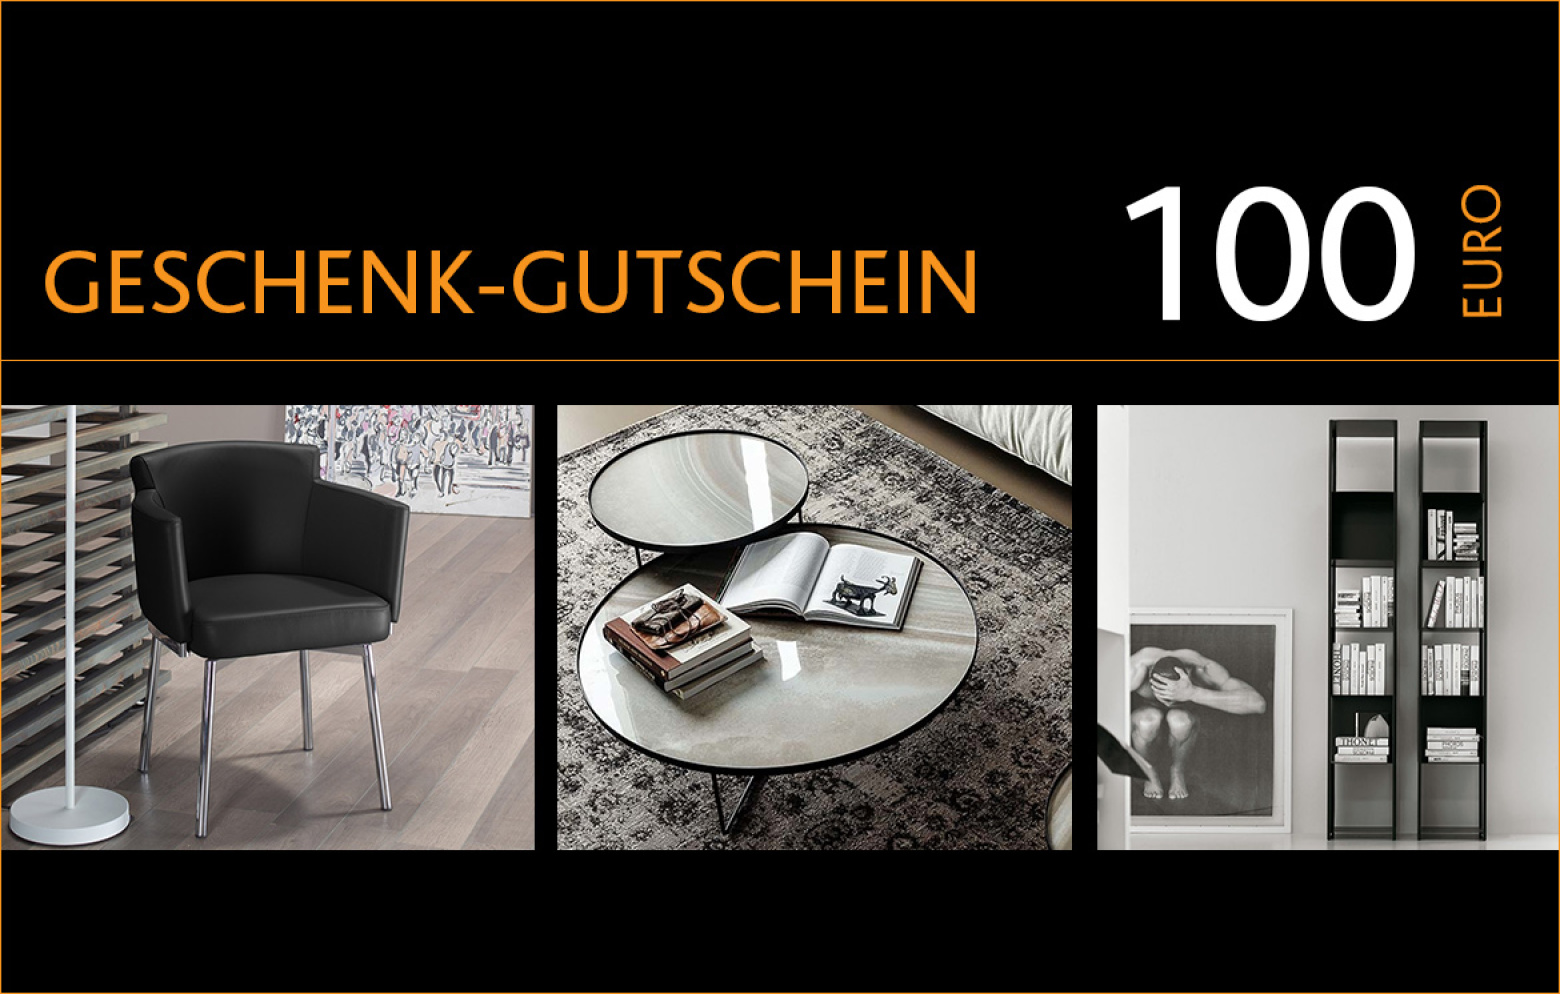 100 euro gutschein gutscheine aktionen who 39 s perfect. Black Bedroom Furniture Sets. Home Design Ideas